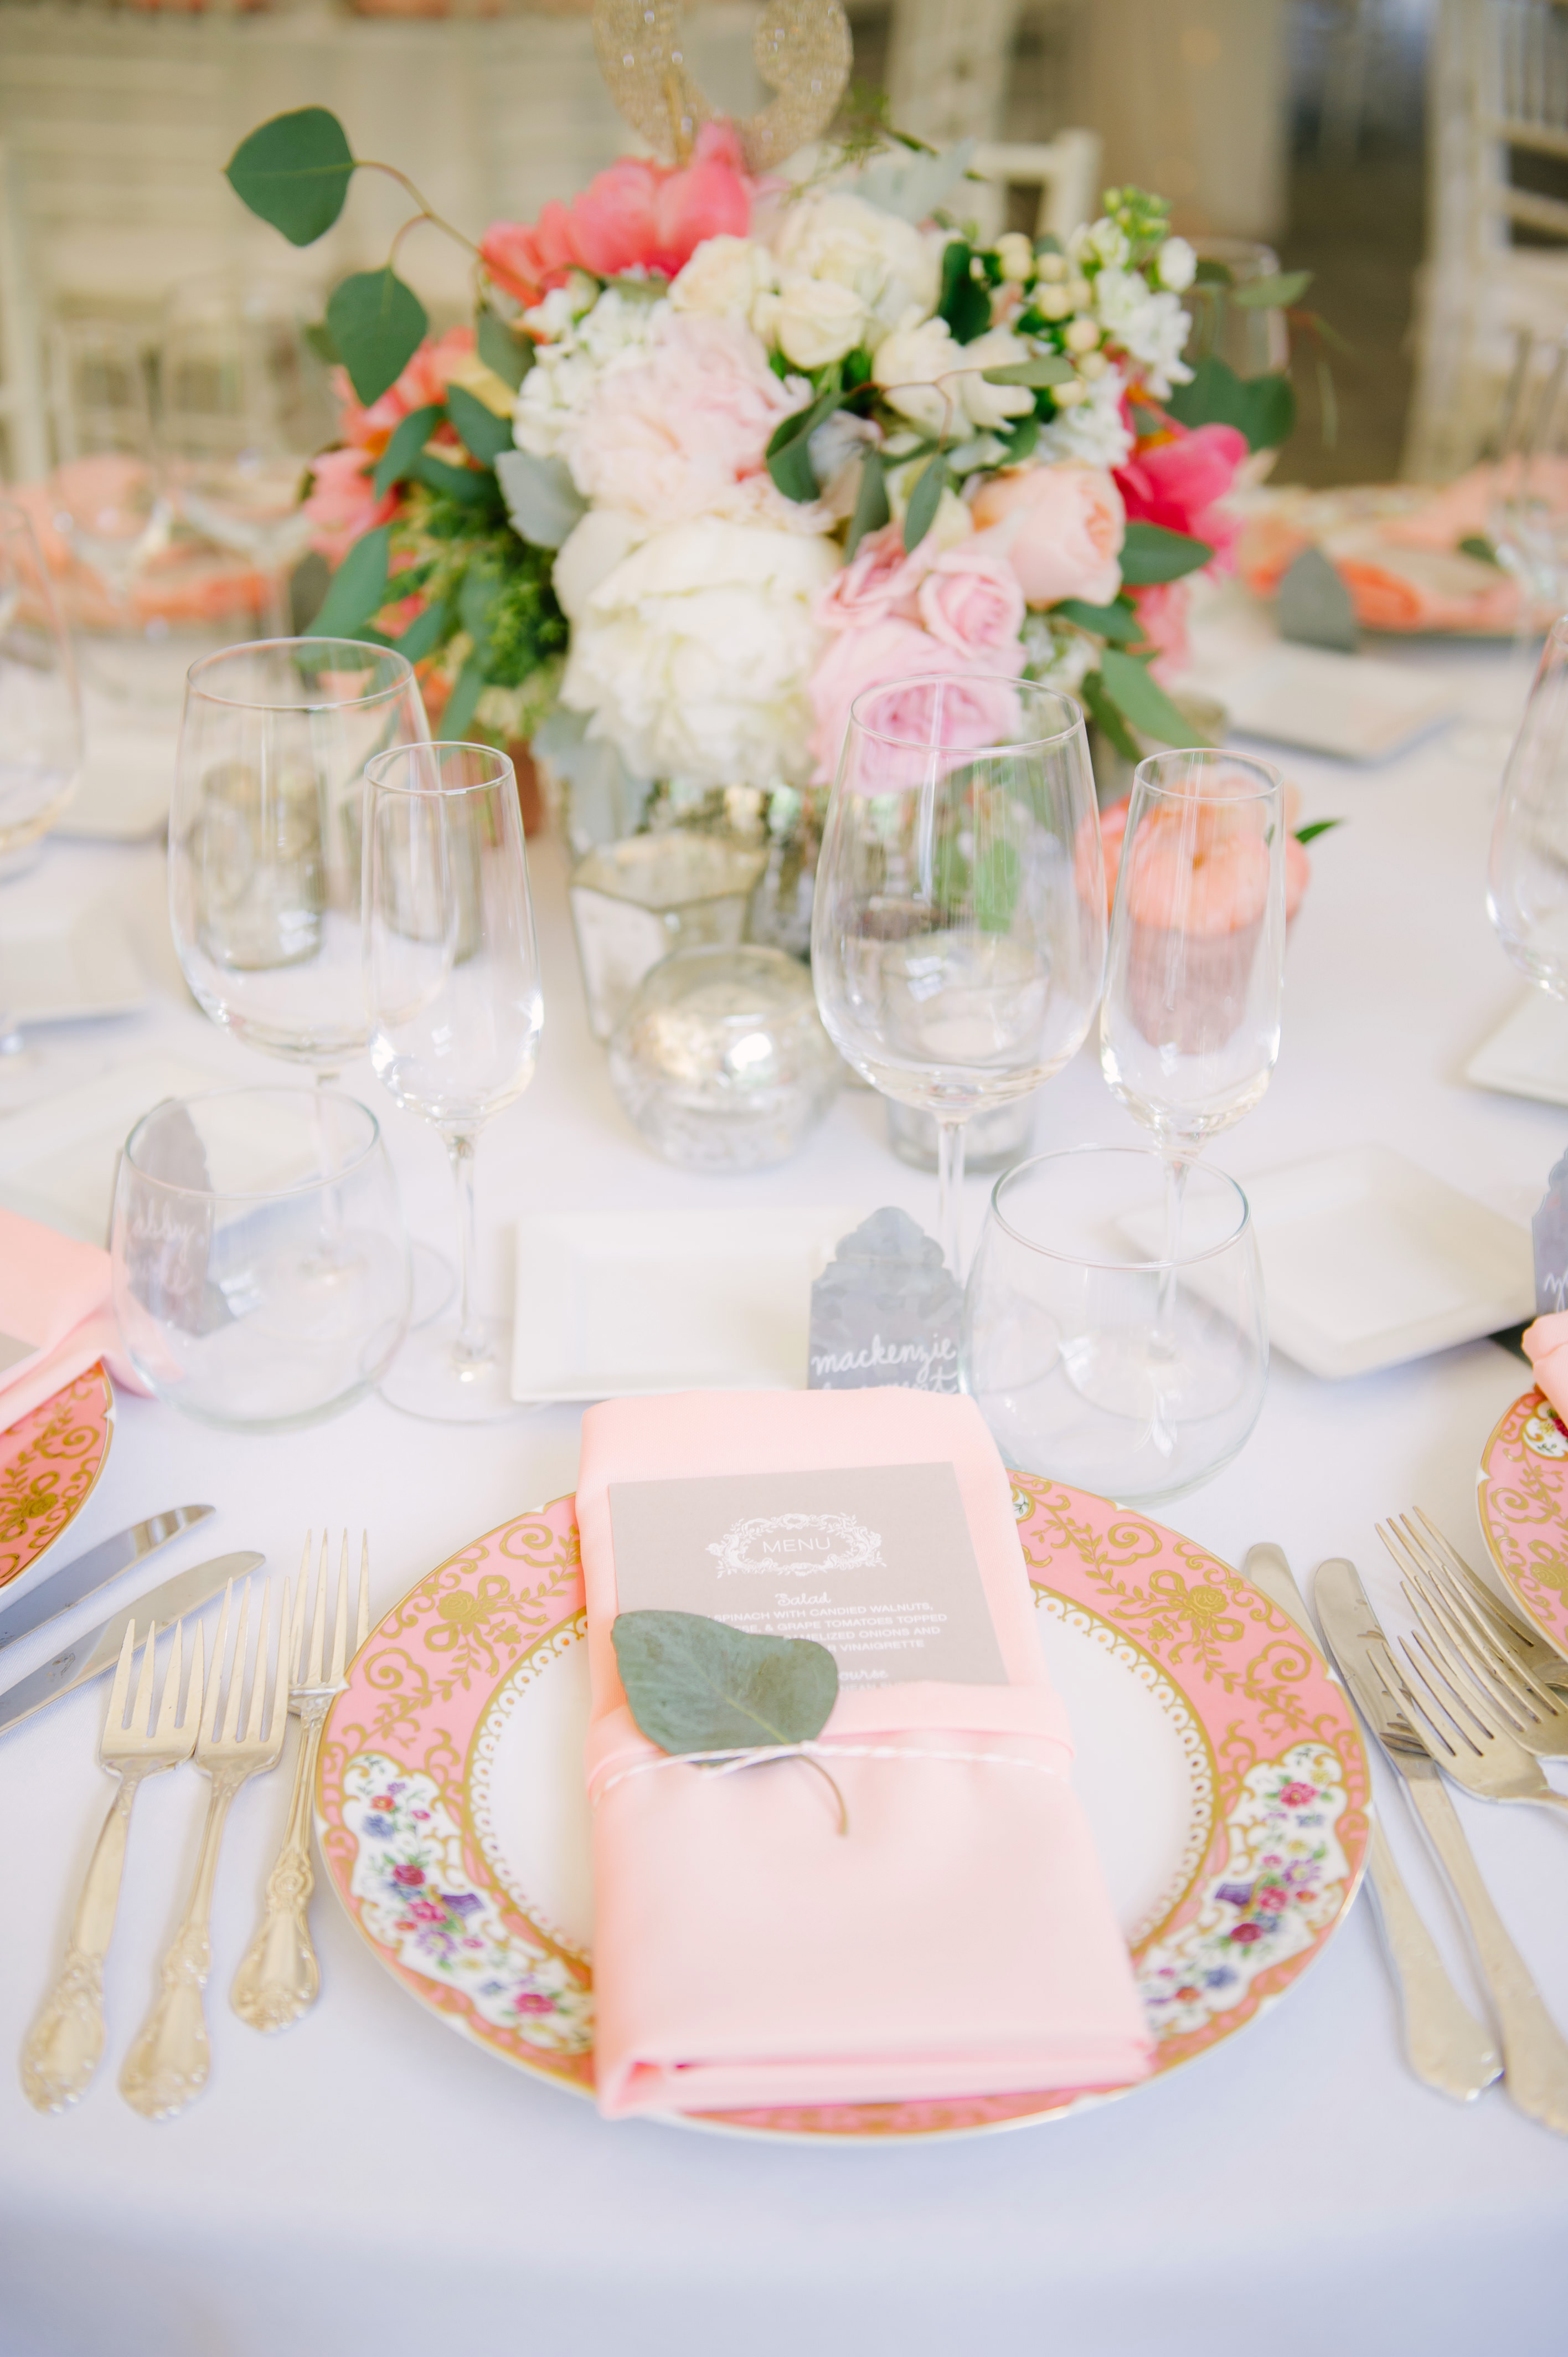 Pink-Rimmed Plates